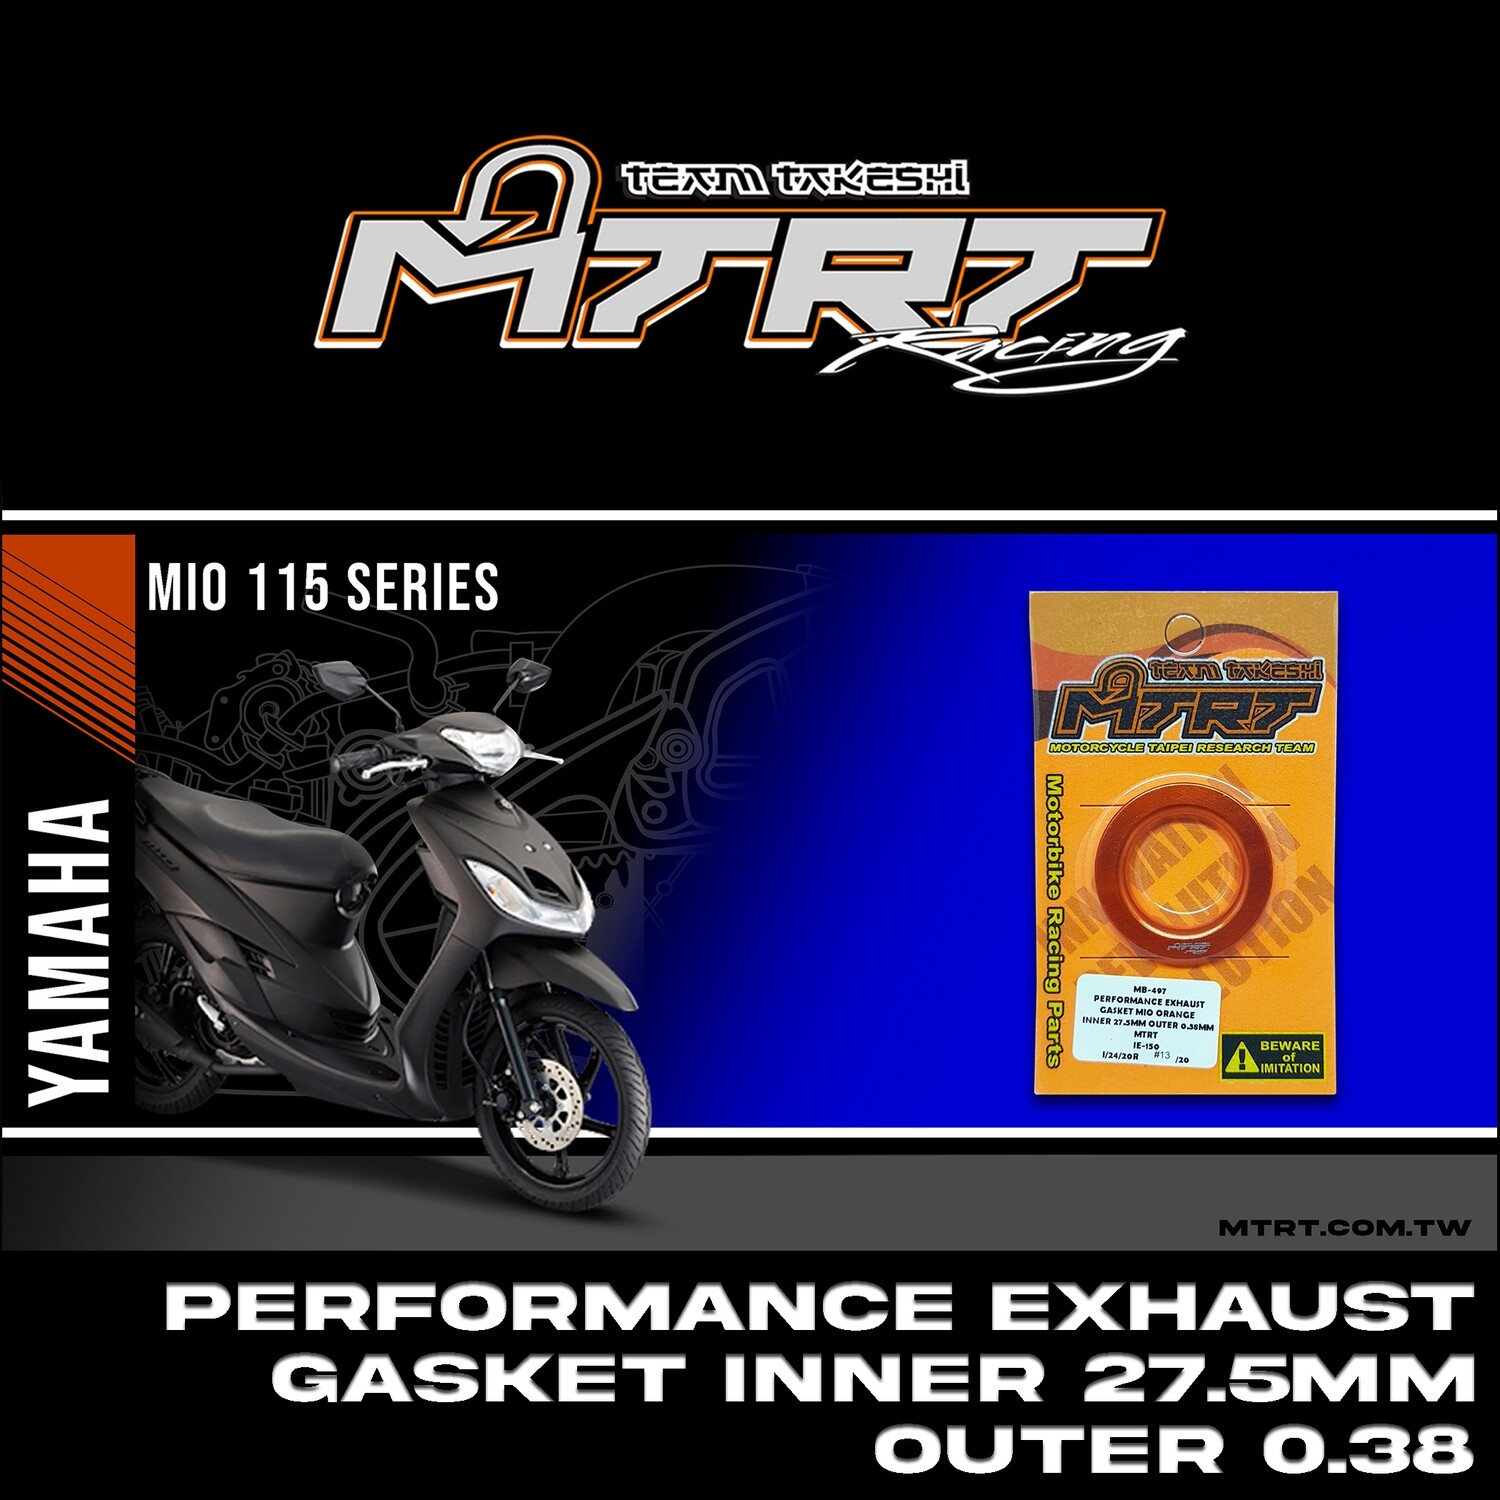 PERFORMANCE EXHAUST GASKET ORANGE INNER 27.5MM/OUTER 0.38MM